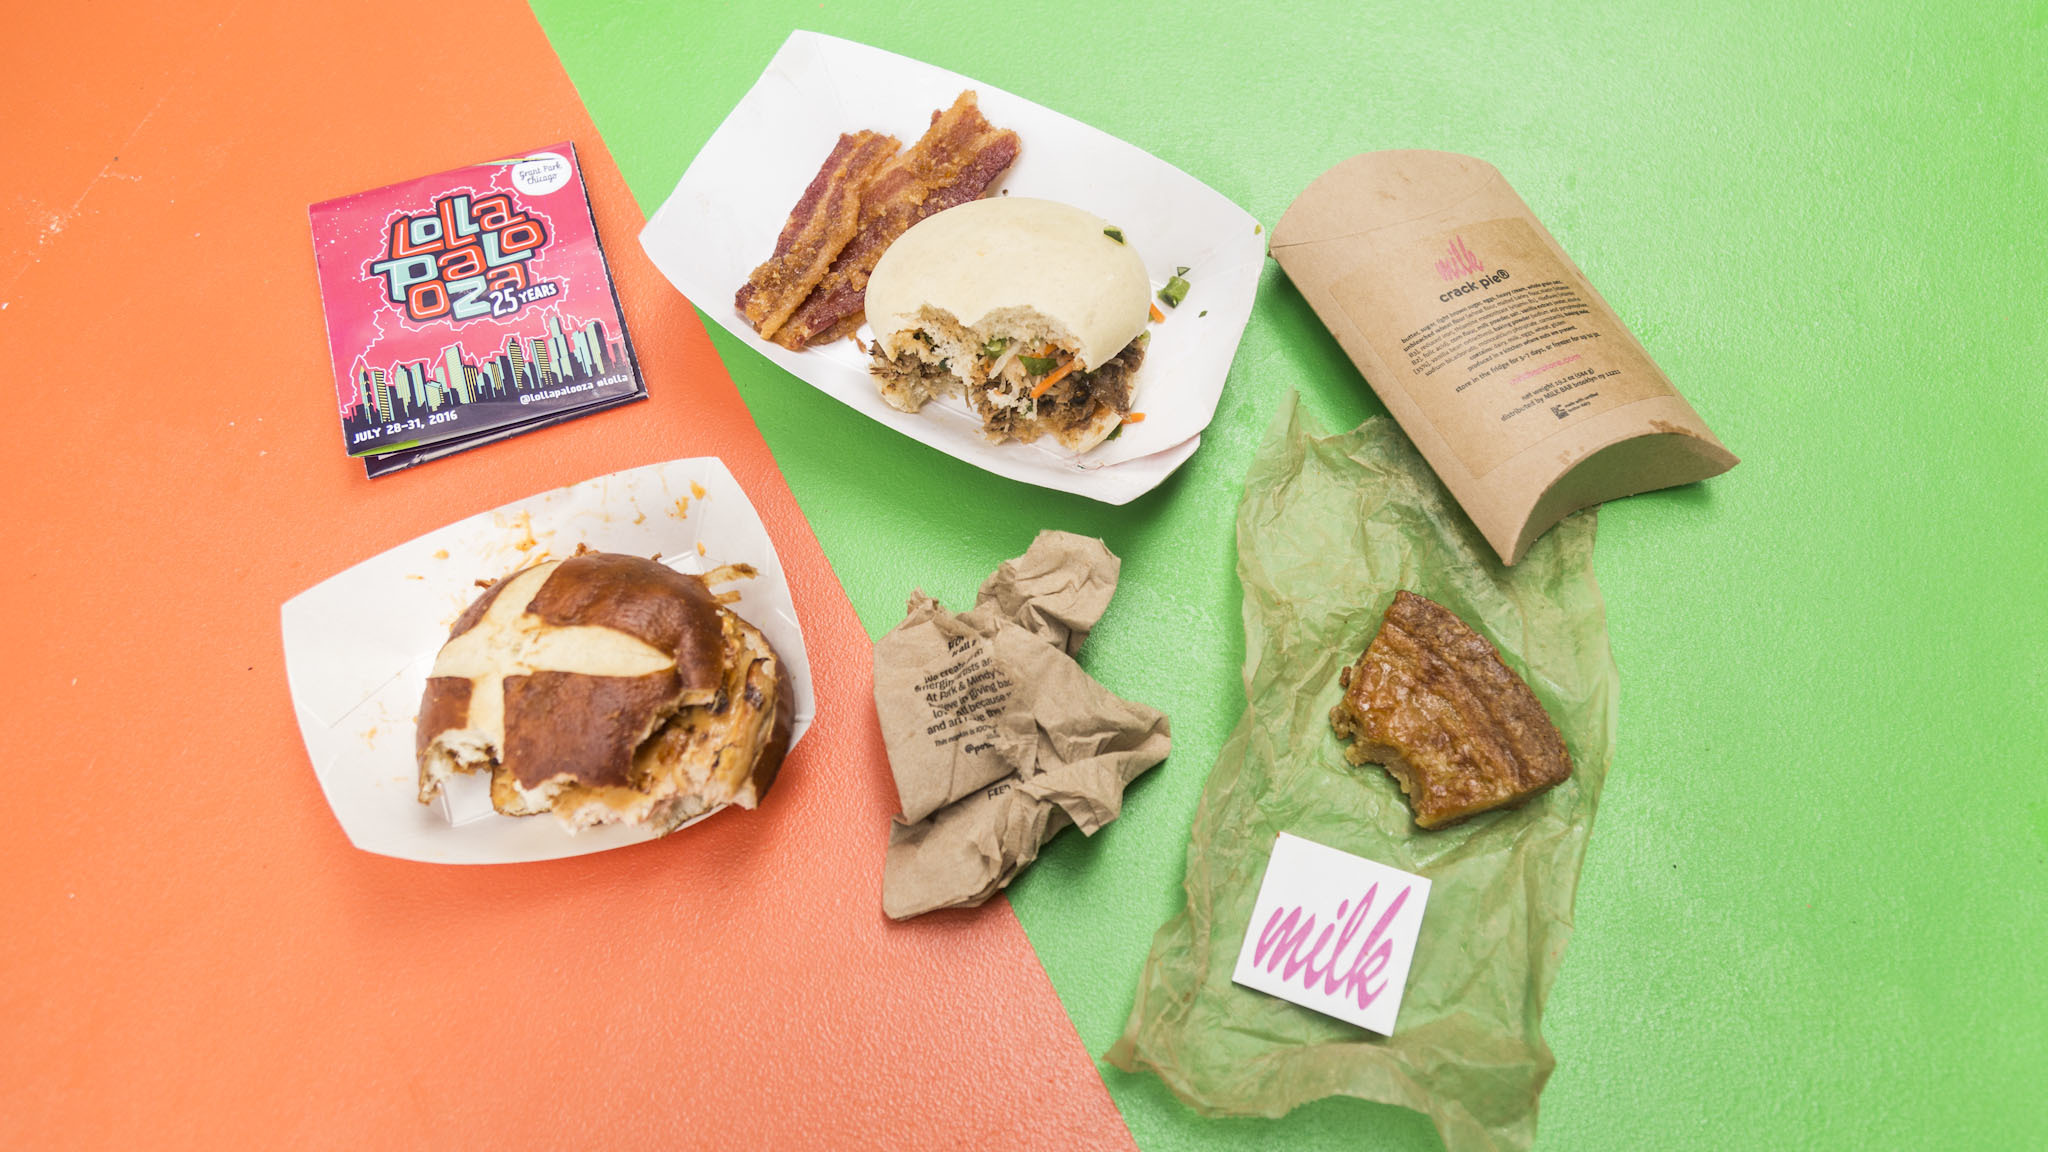 What to eat (and drink) at Lollapalooza